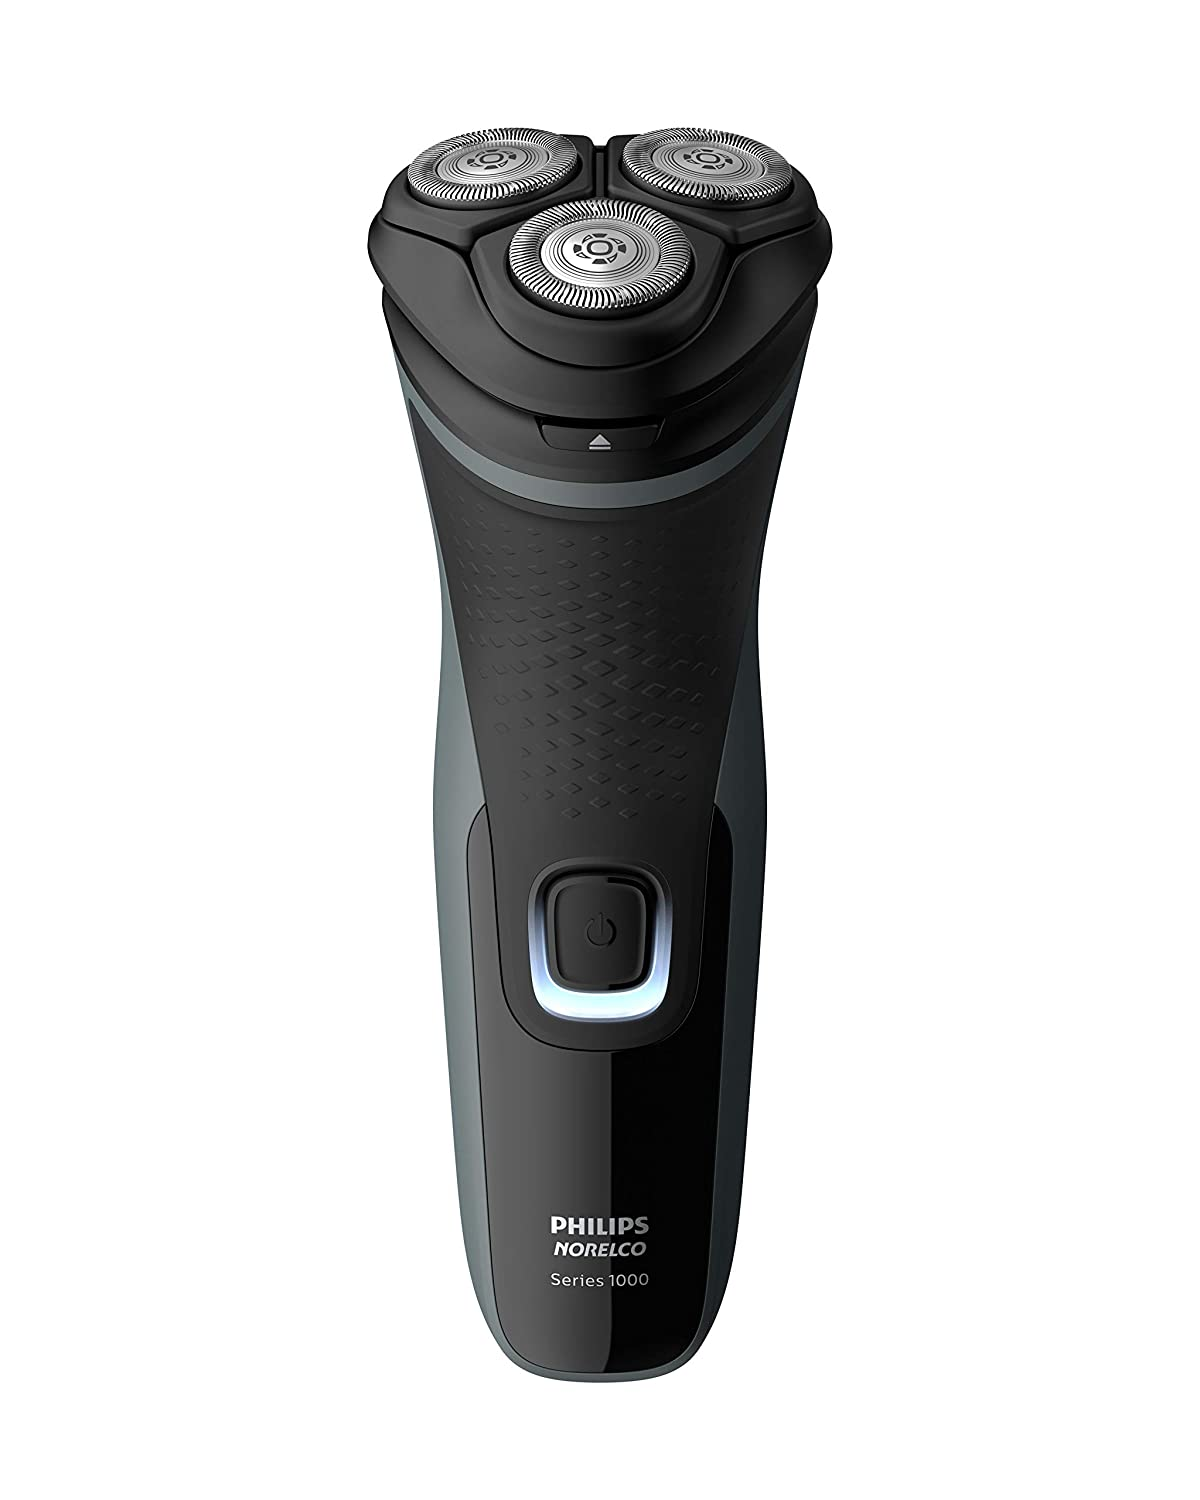 Philips Norelco Shaver 2300